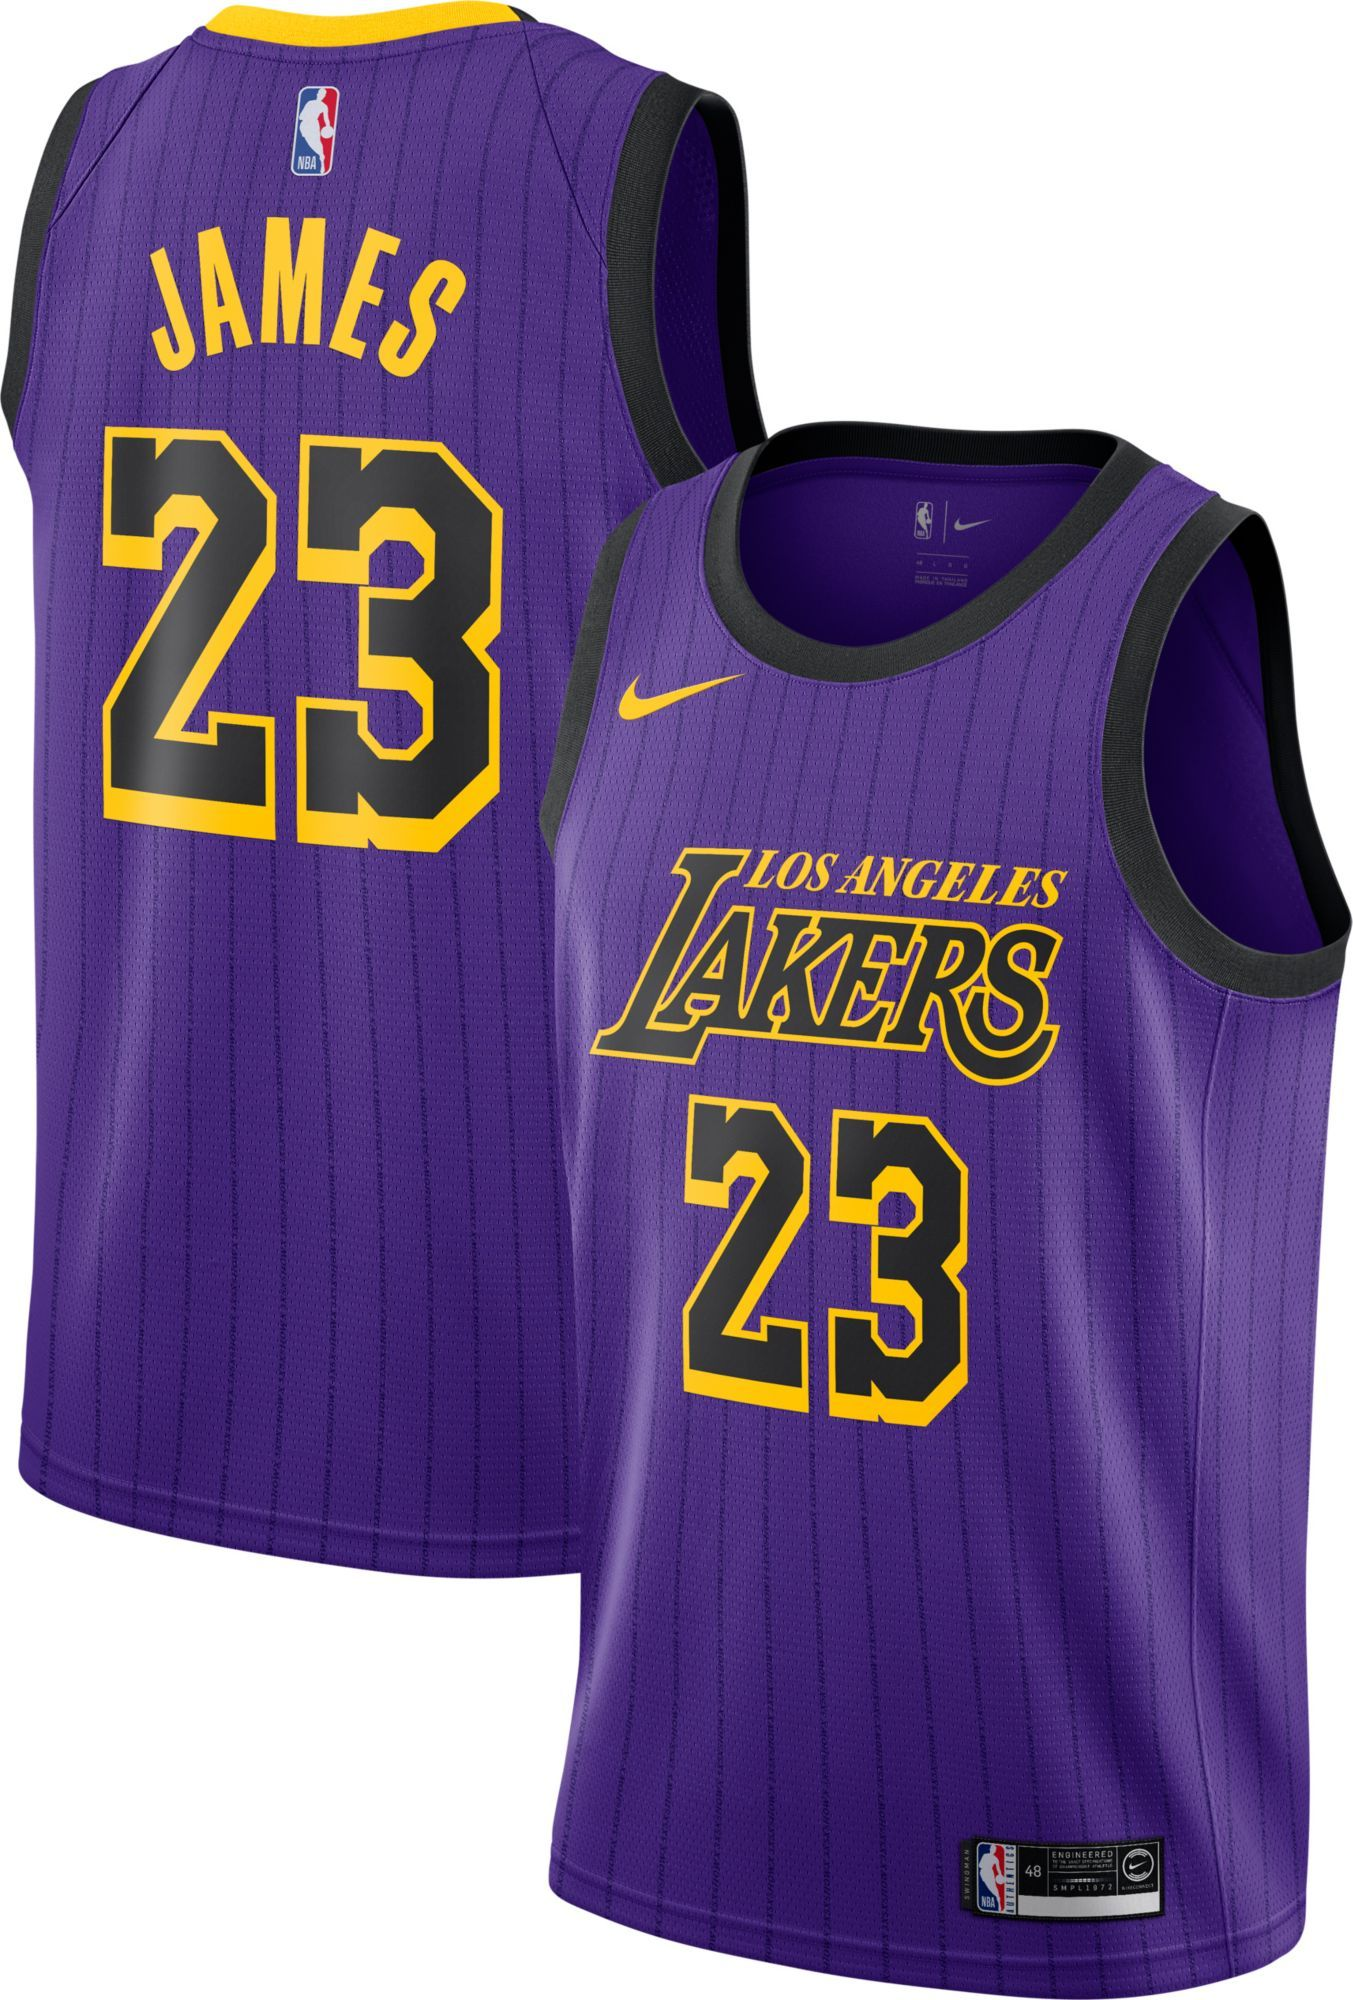 0b0db05a2 Nike Men s Los Angeles Lakers LeBron James Dri-FIT City Edition Swingman  Jersey